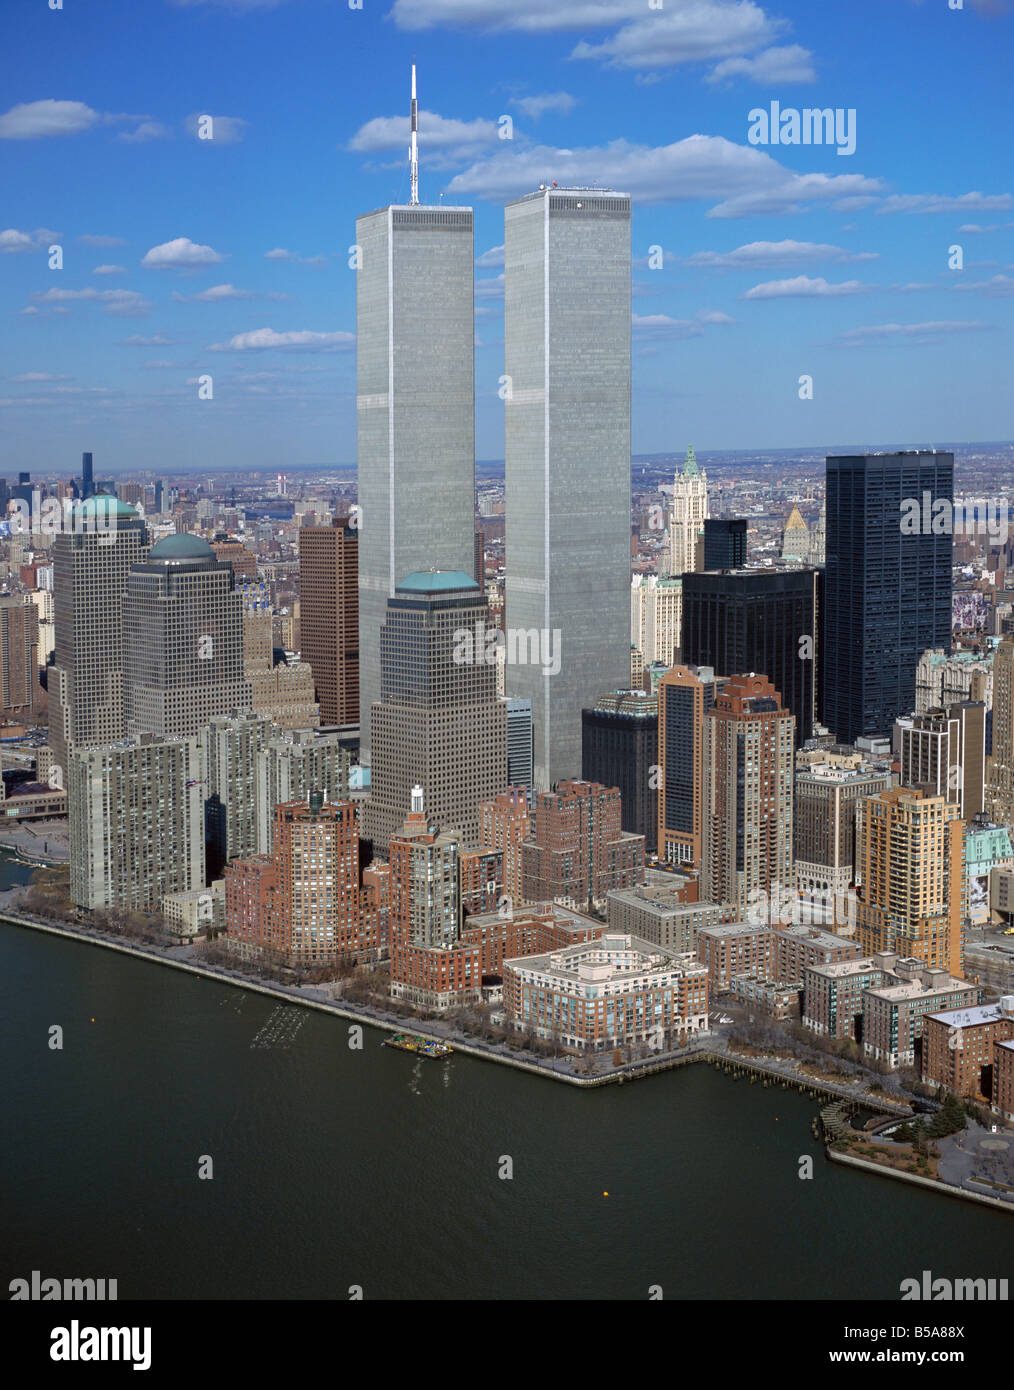 aerial view above twin towers World Trade Center New York city from Hudson river - Stock Image